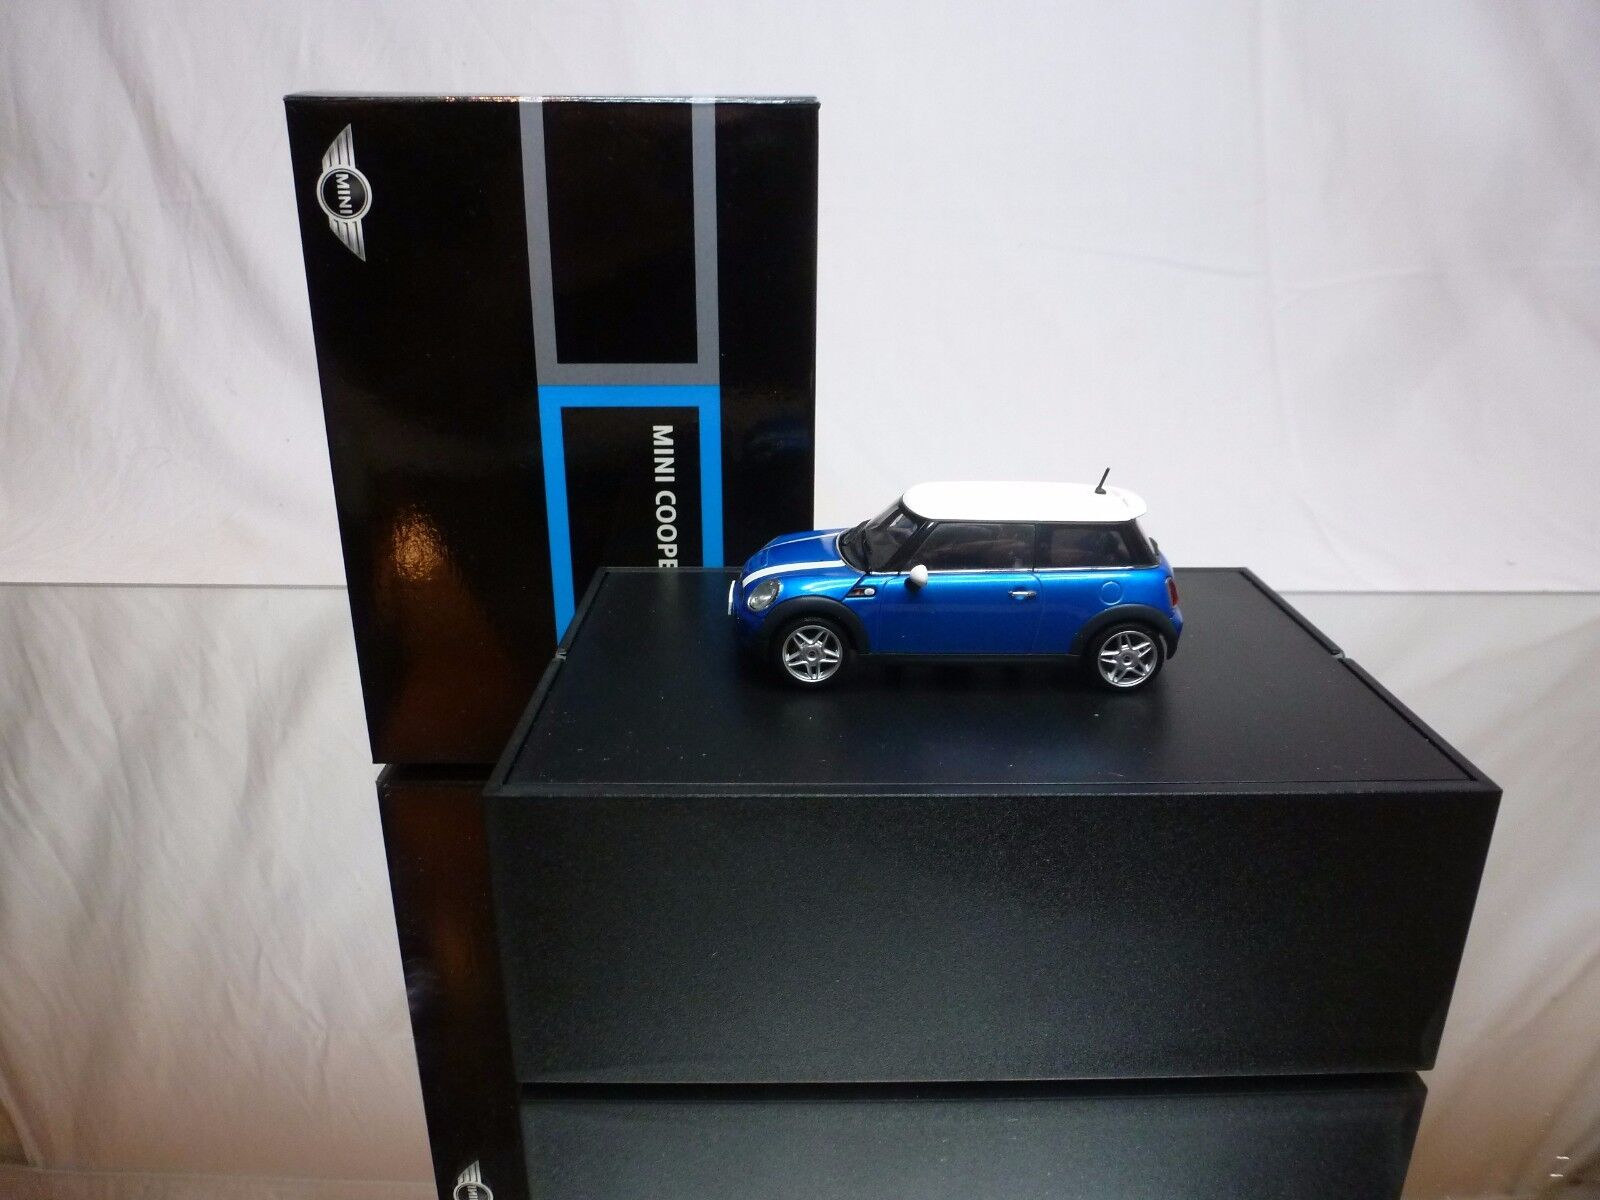 AUTOART MINI COOPER S - blu + bianca 1 43 - EXCELLENT CONDITION IN BOX